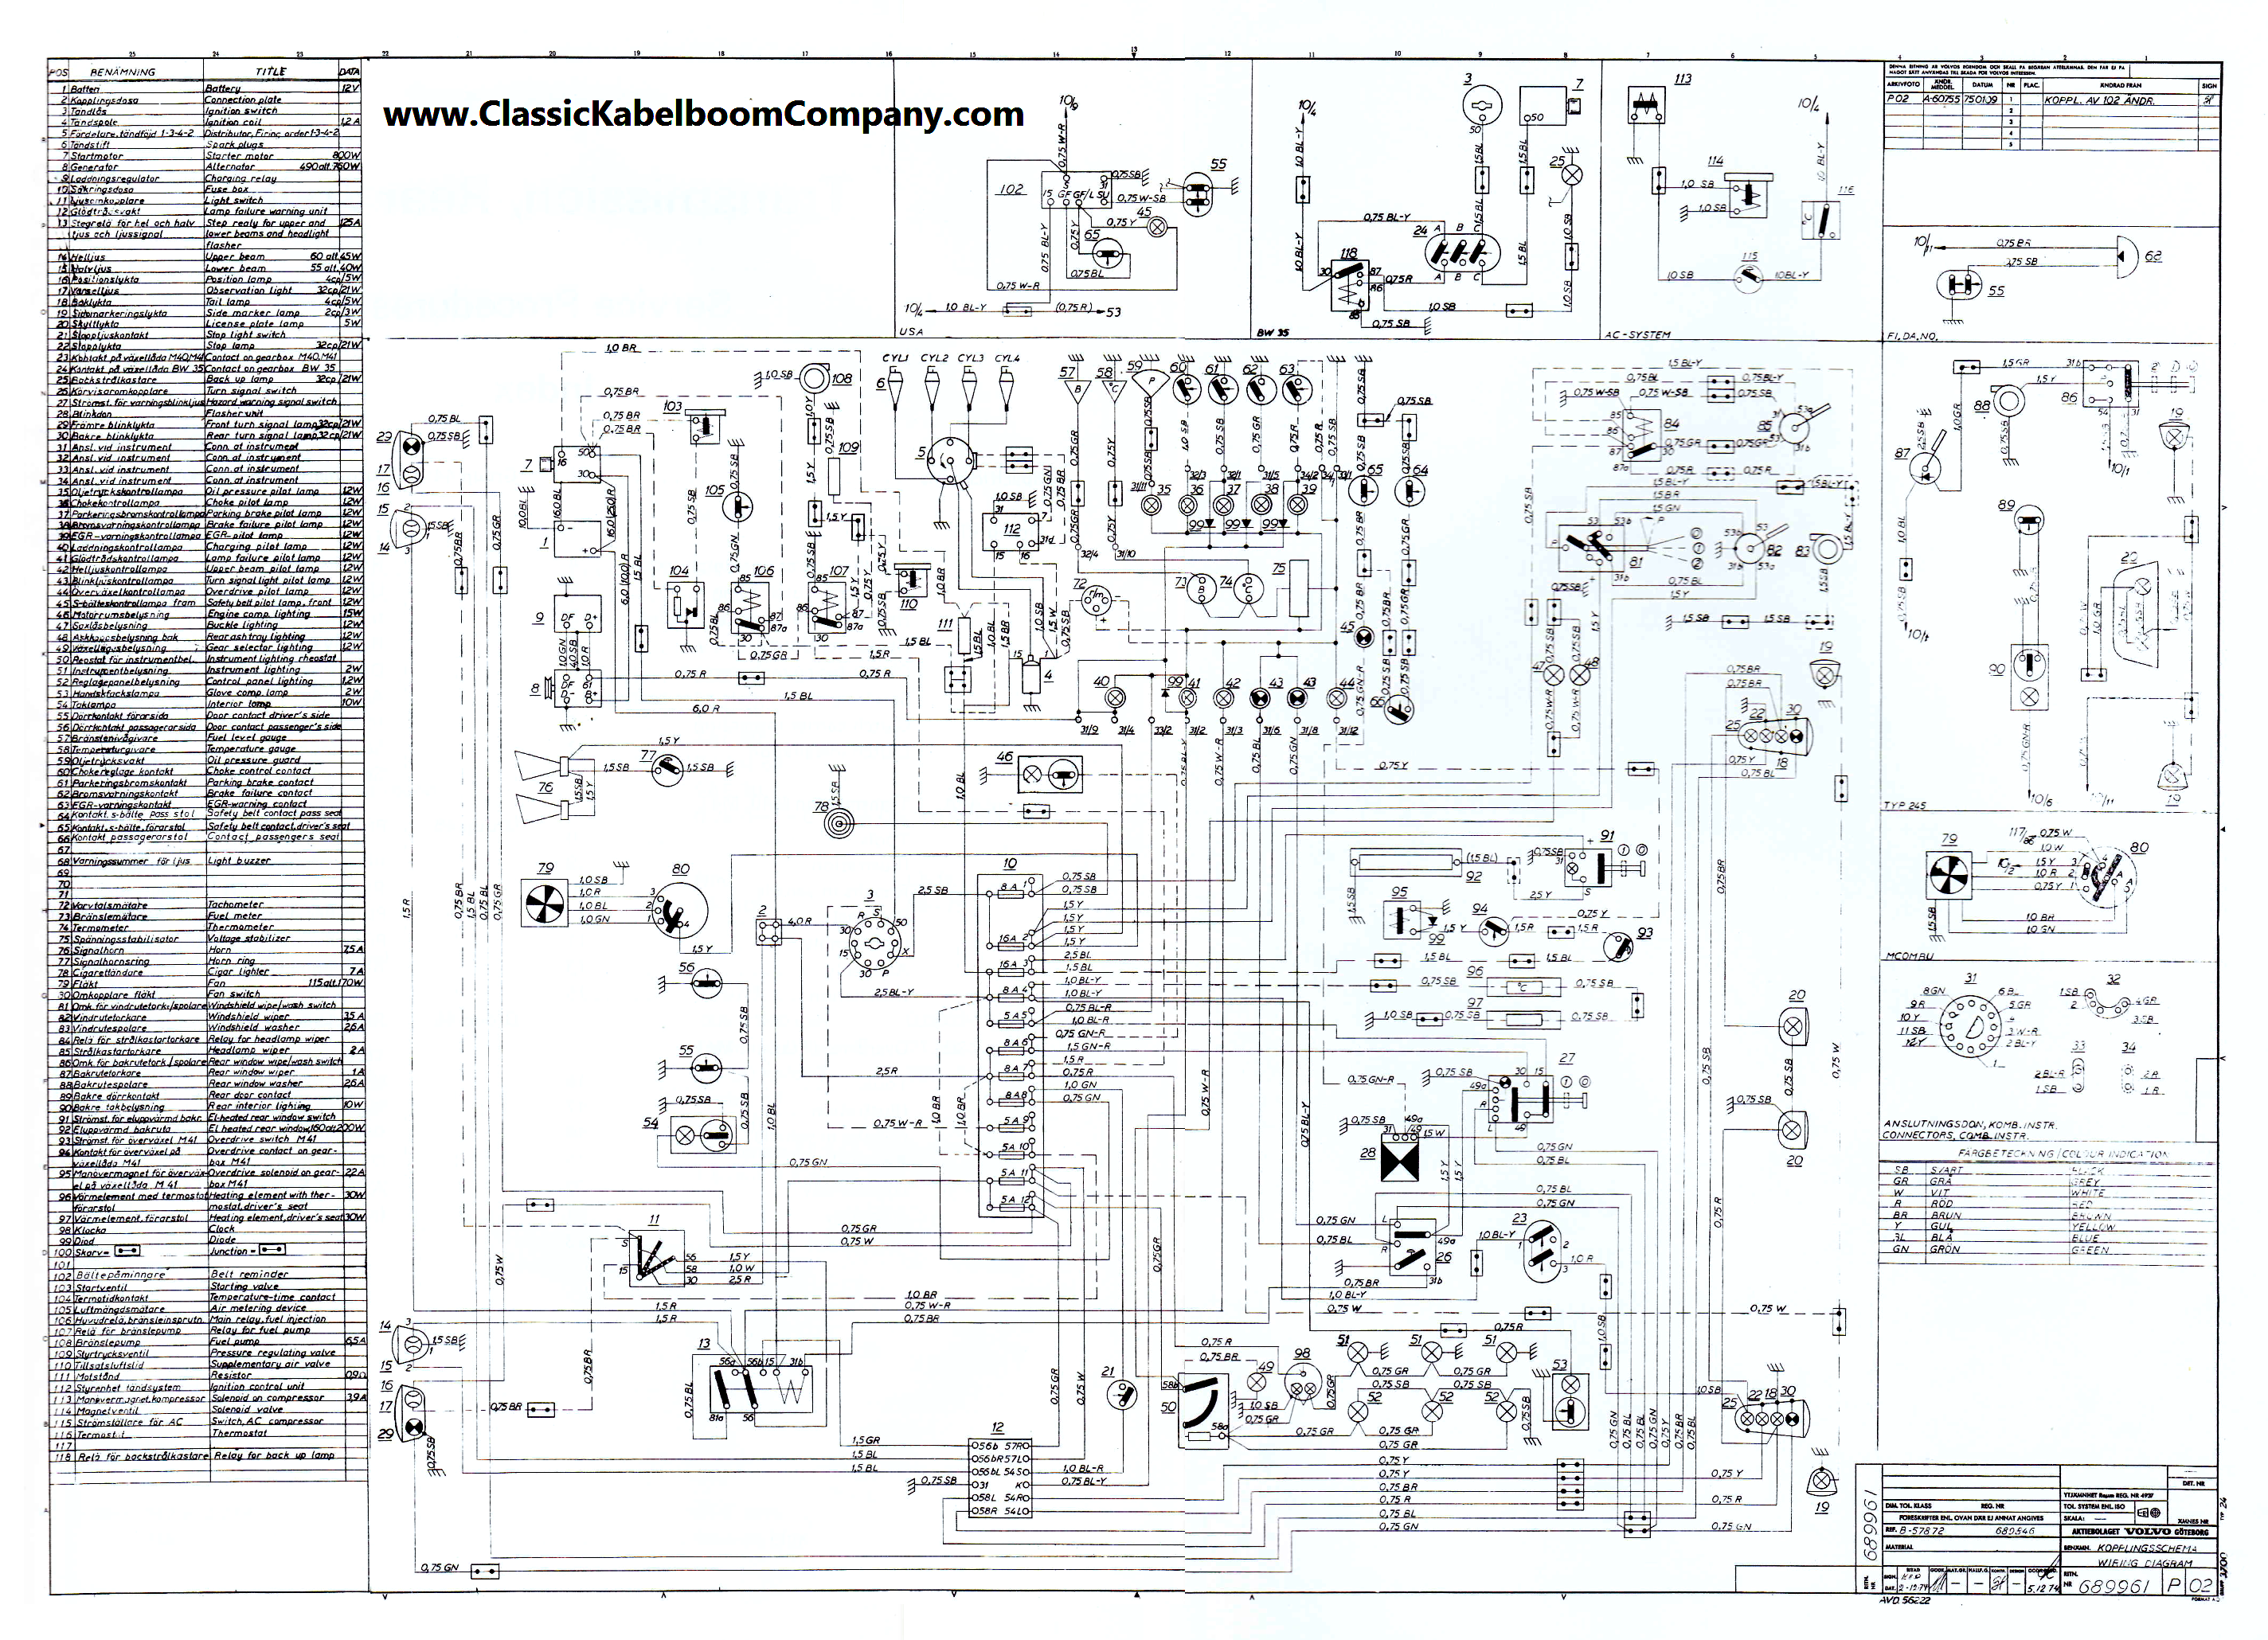 volvo 242 gt wiring diagram with Index on Showthread together with Volvo 242 Custom By Patrick Lindgren additionally Volvo 142 Wiring Diagram in addition With Toyota Radio Wiring Diagram together with Hairyjesusbeachman.